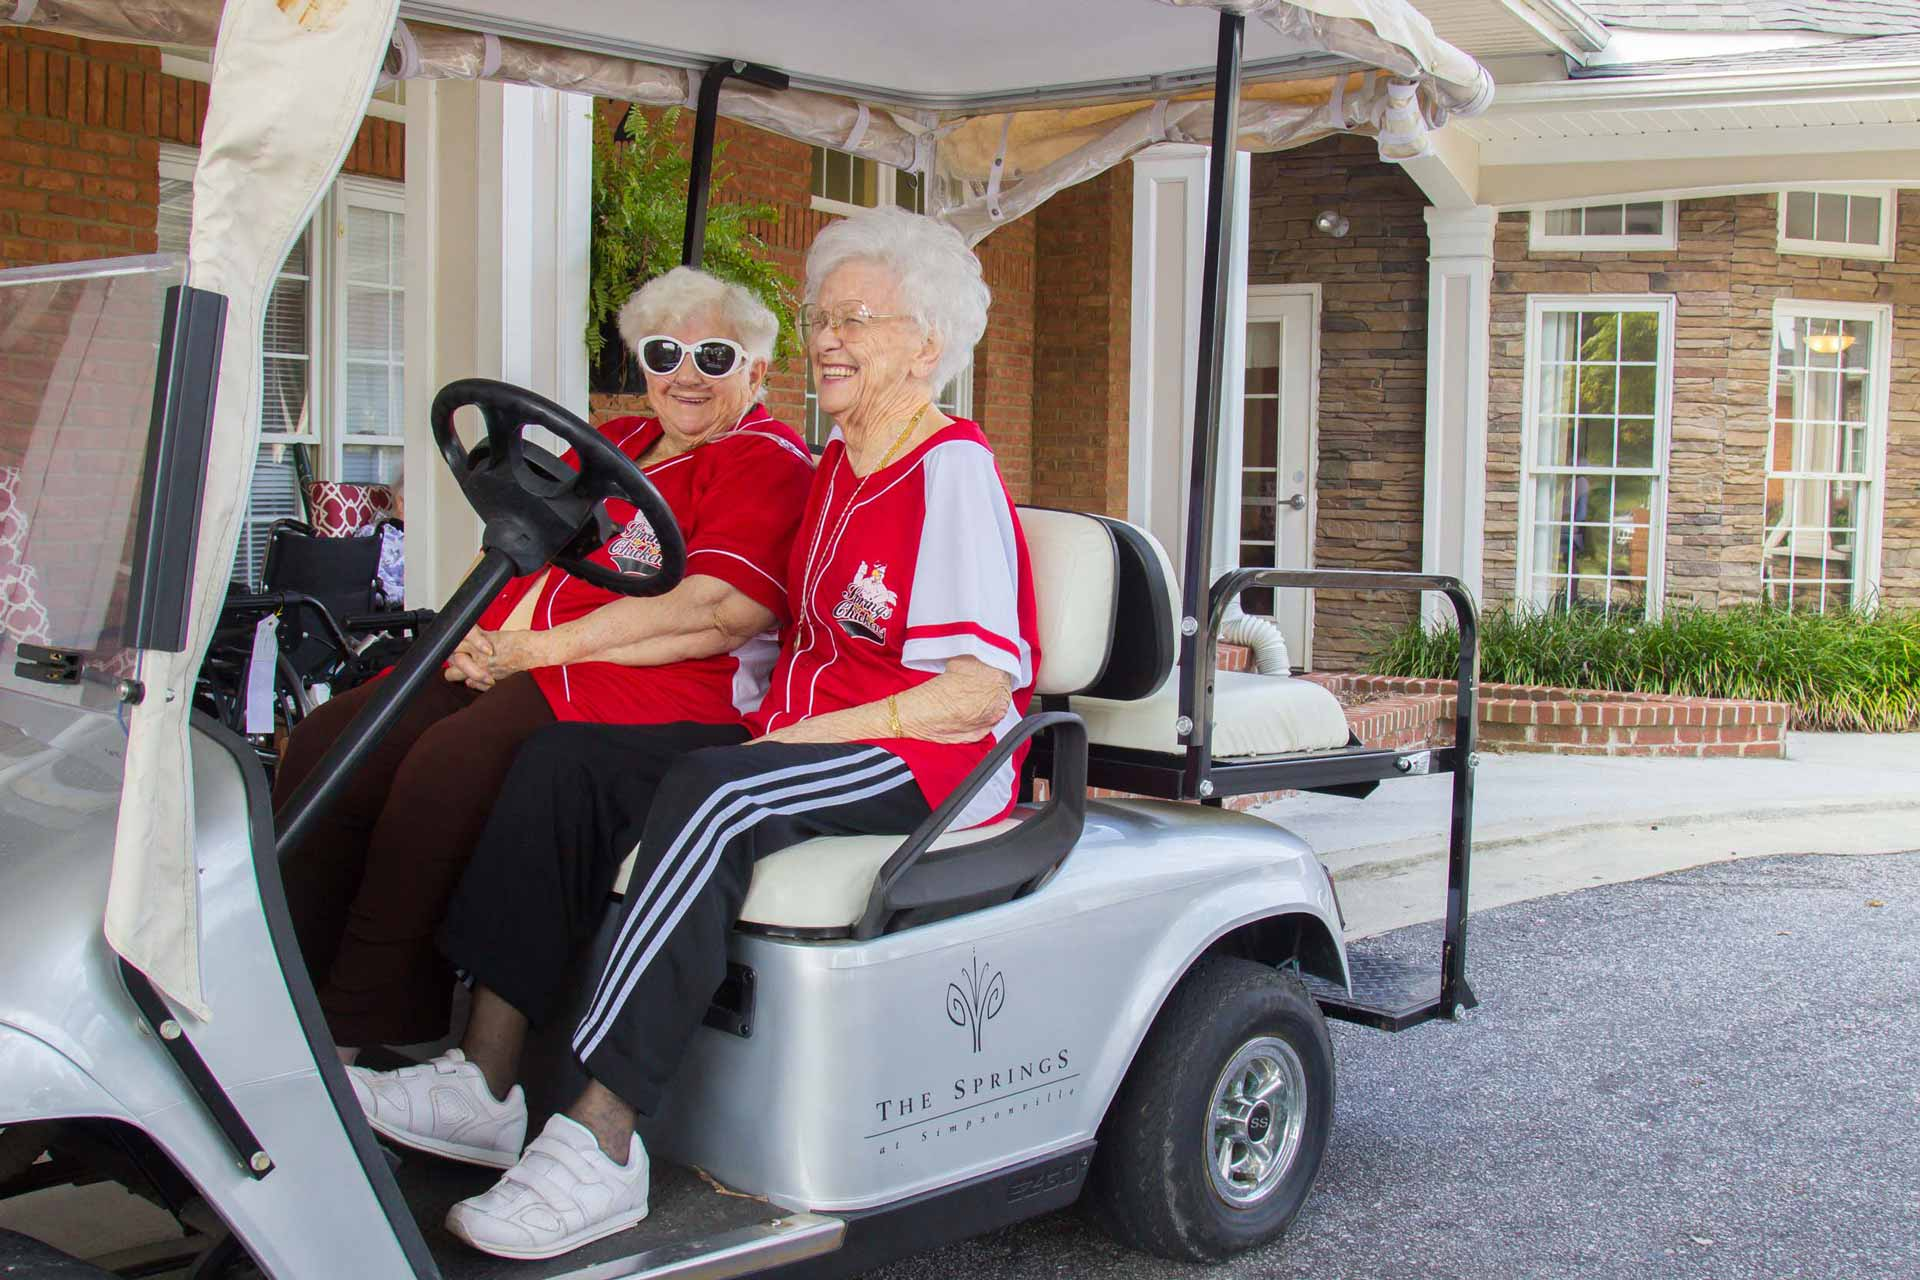 Senior Residents having fun on golf cart